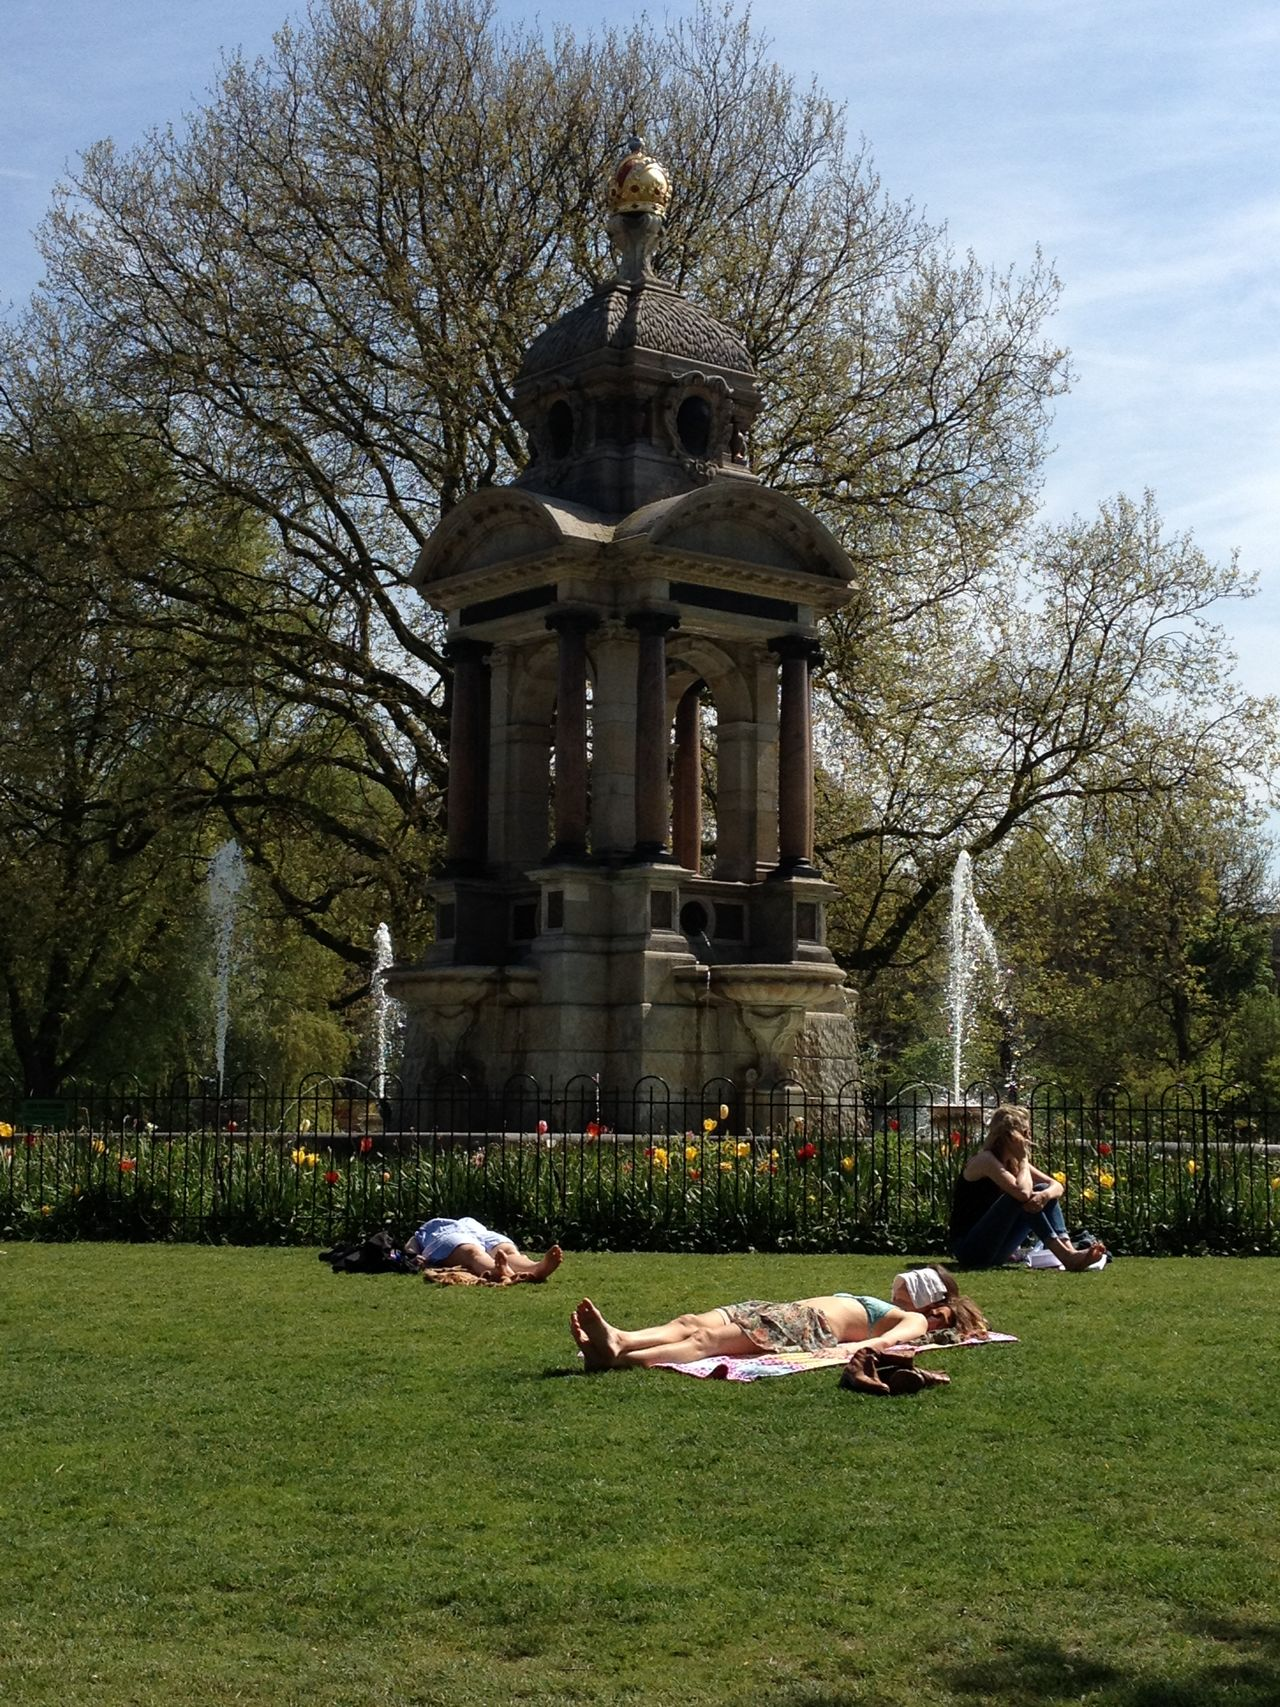 Summer In The City Three Girls Sunbathing In The Park Sarphatipark Amsterdam Netherlands Sunny Day Water Fountain Lying Down Talking On The Phone Grass Outdoors Urban Lifestyle The Essence Of Summer